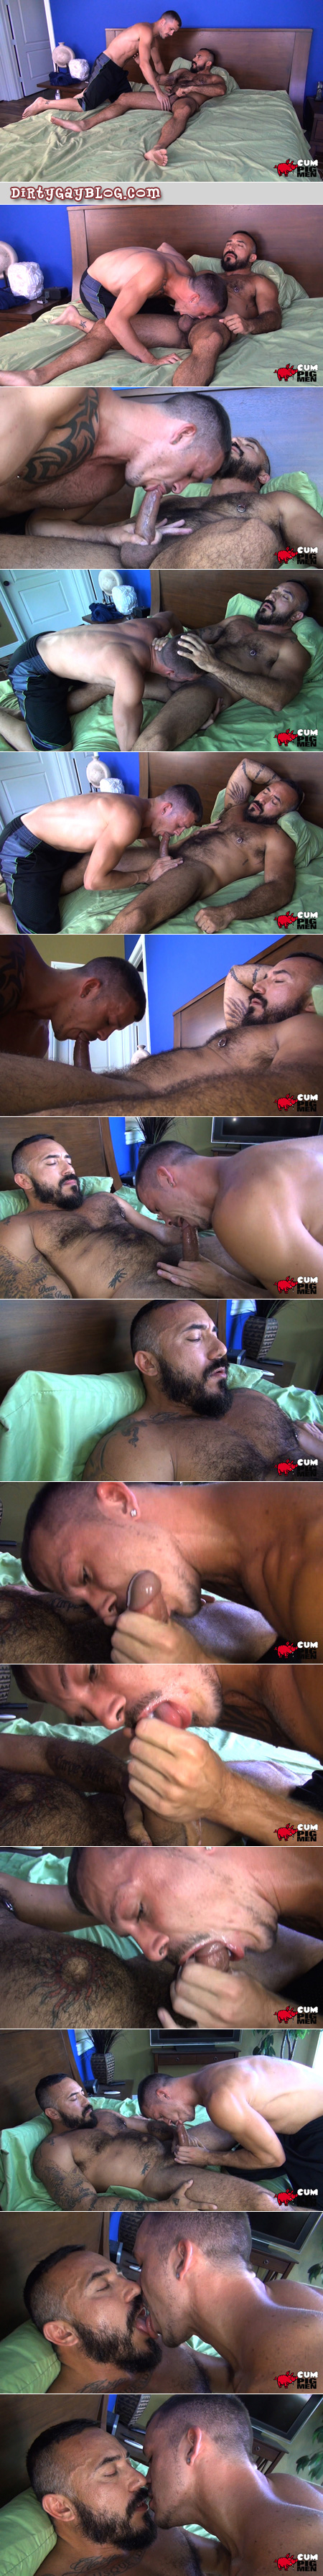 Hairy Daddy muscle bear sucked to completion then snowballed by a fit younger man.